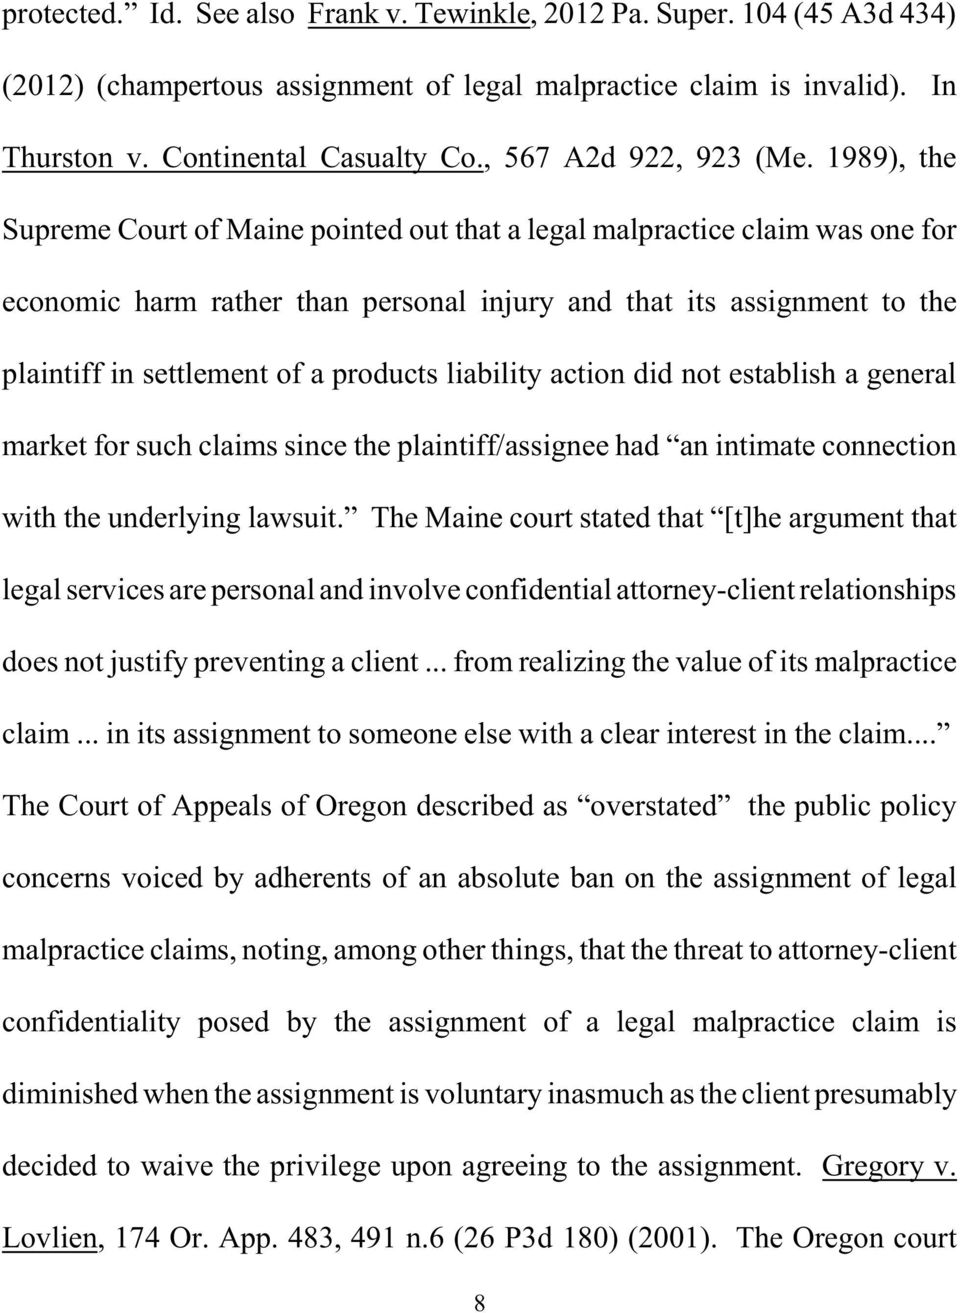 1989), the Supreme Court of Maine pointed out that a legal malpractice claim was one for economic harm rather than personal injury and that its assignment to the plaintiff in settlement of a products